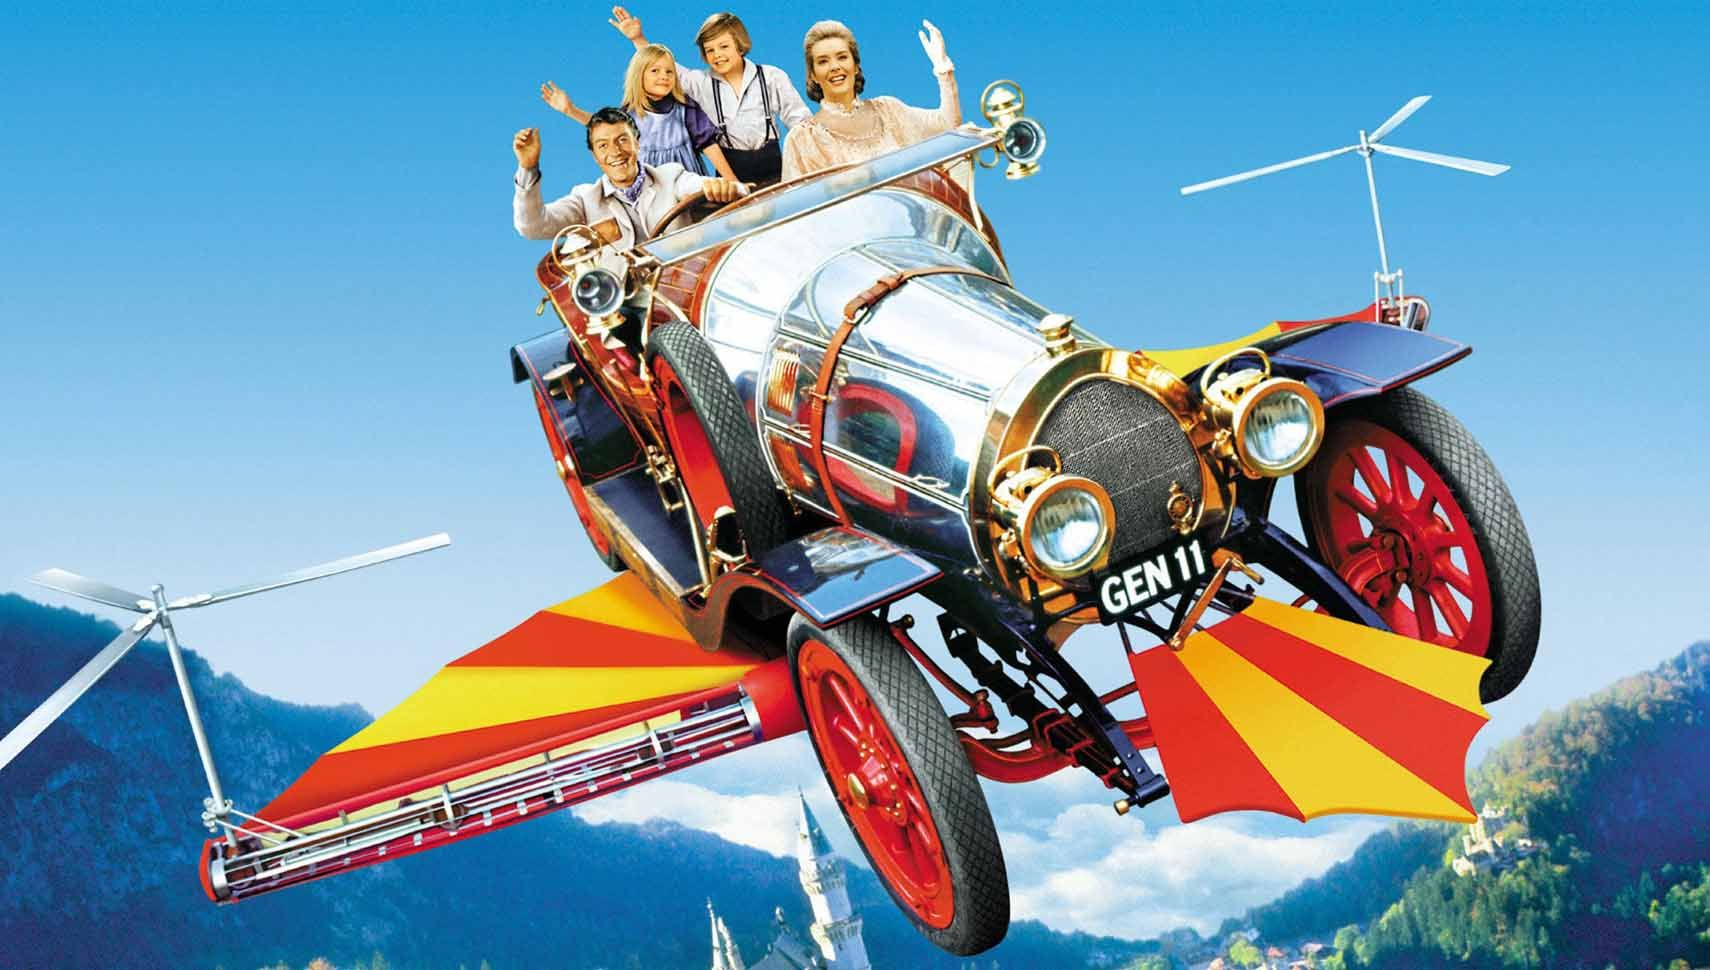 Chitty Chitty Bang Bang This Vintage Car Is An Absolute Gem